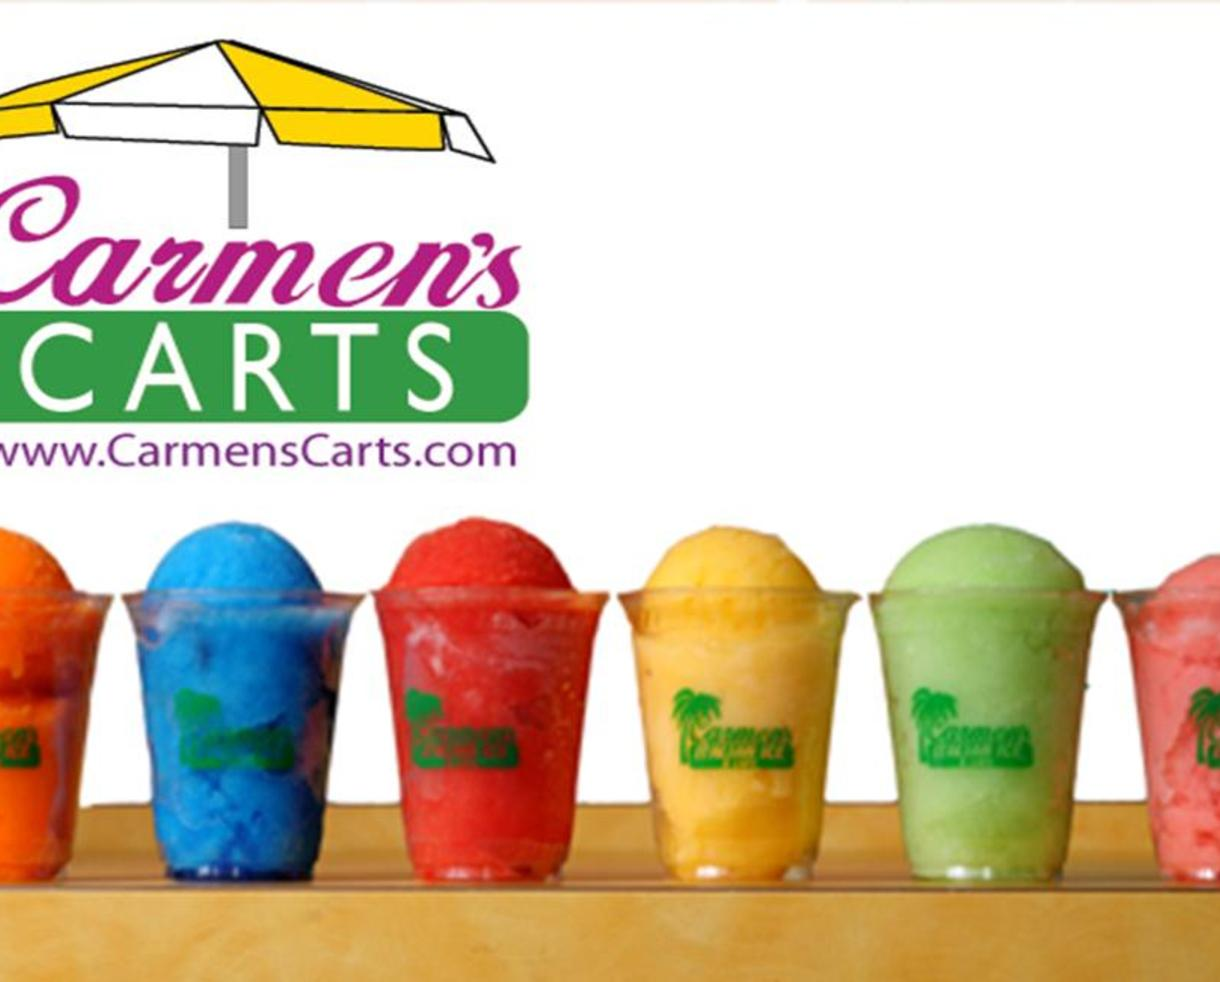 $50 for Carmen's On The Fly Italian Ice Party (50% off - $100 value)